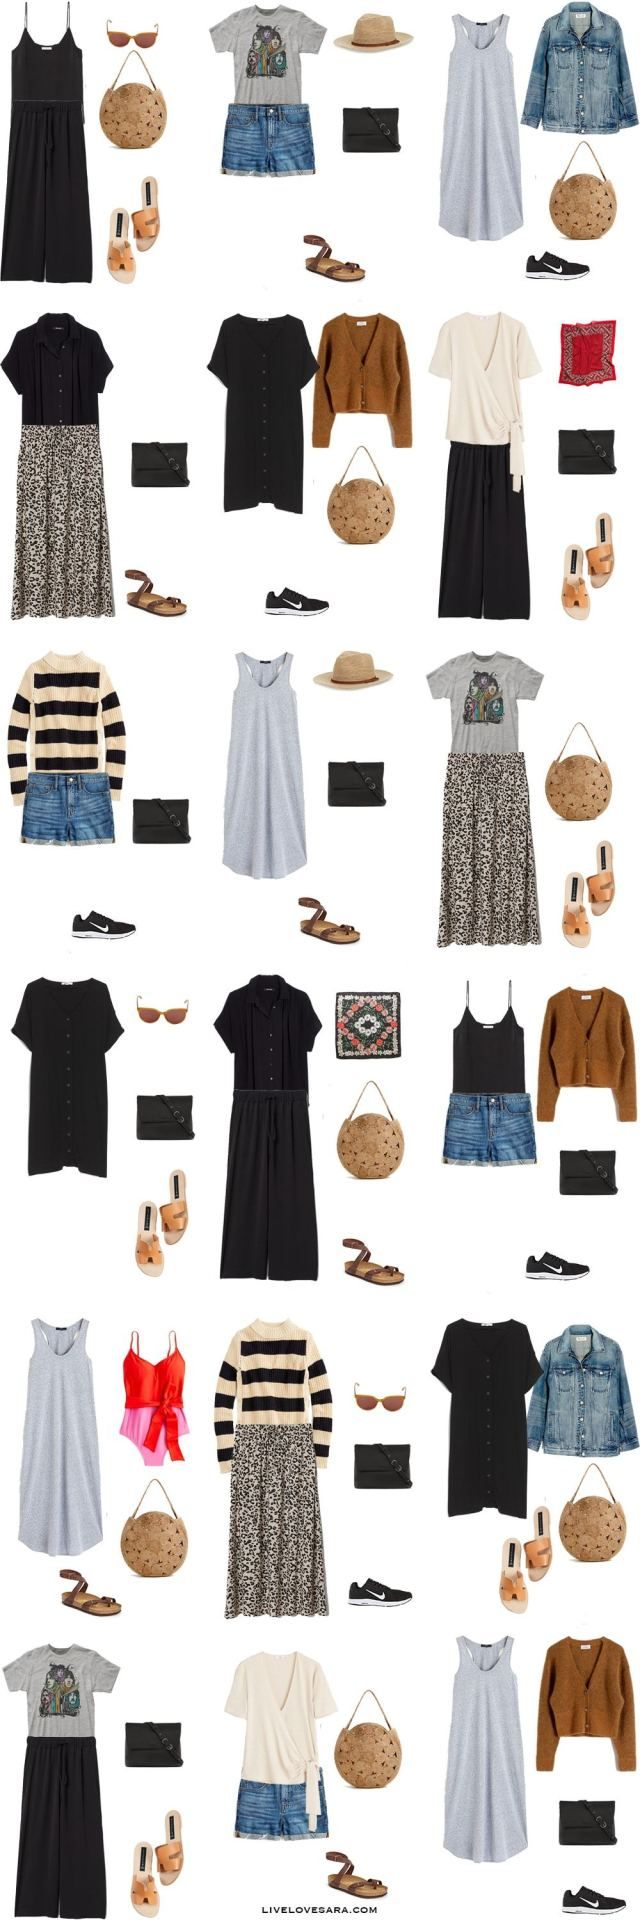 What to Pack for Hawaii - Packing Light List #travelwardrobesummer